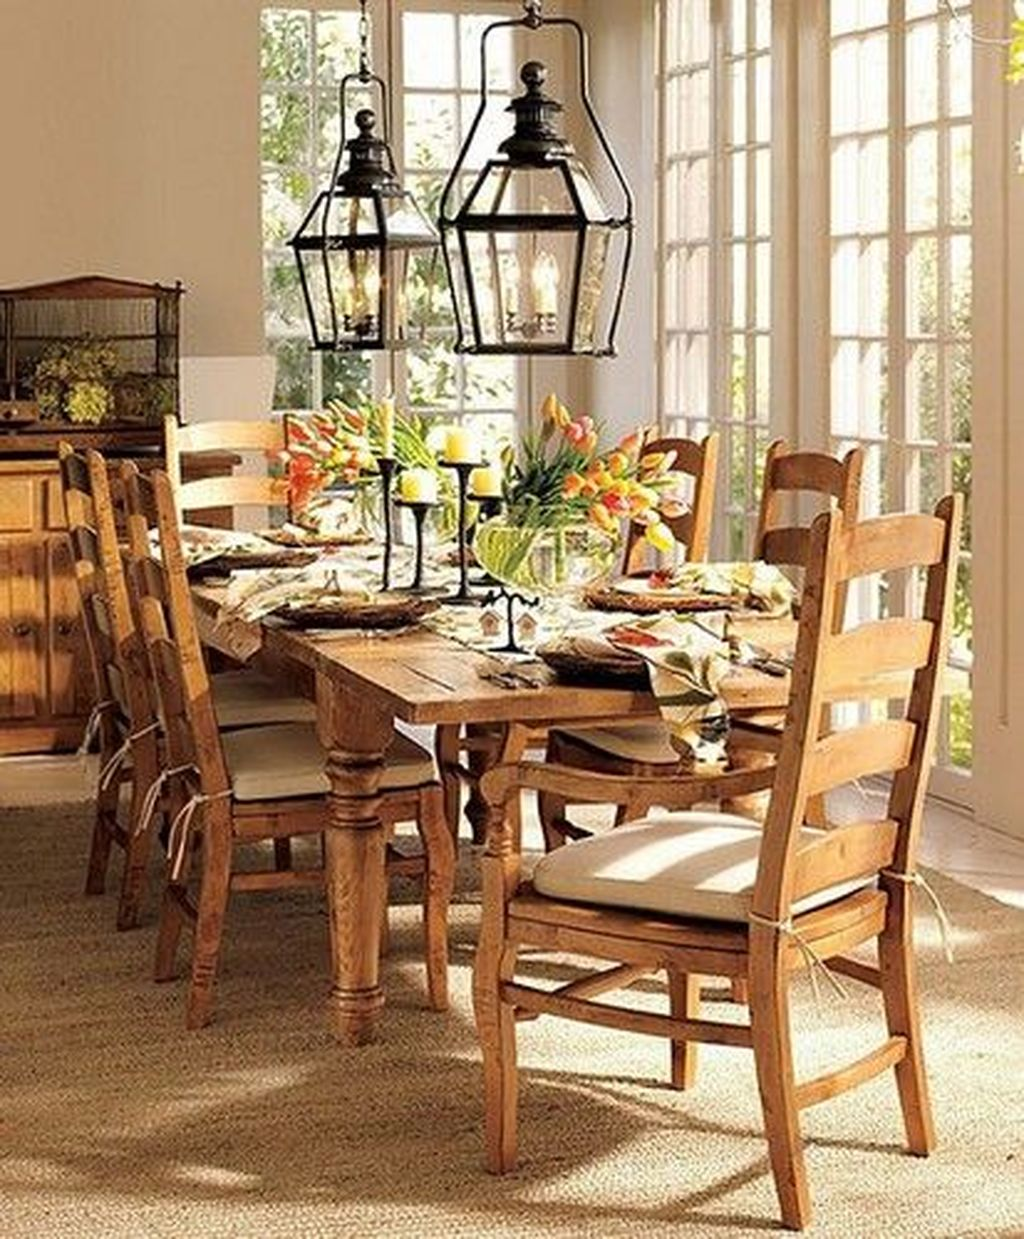 Gorgeous Spring Centerpieces Ideas For Dining Room Decor 18